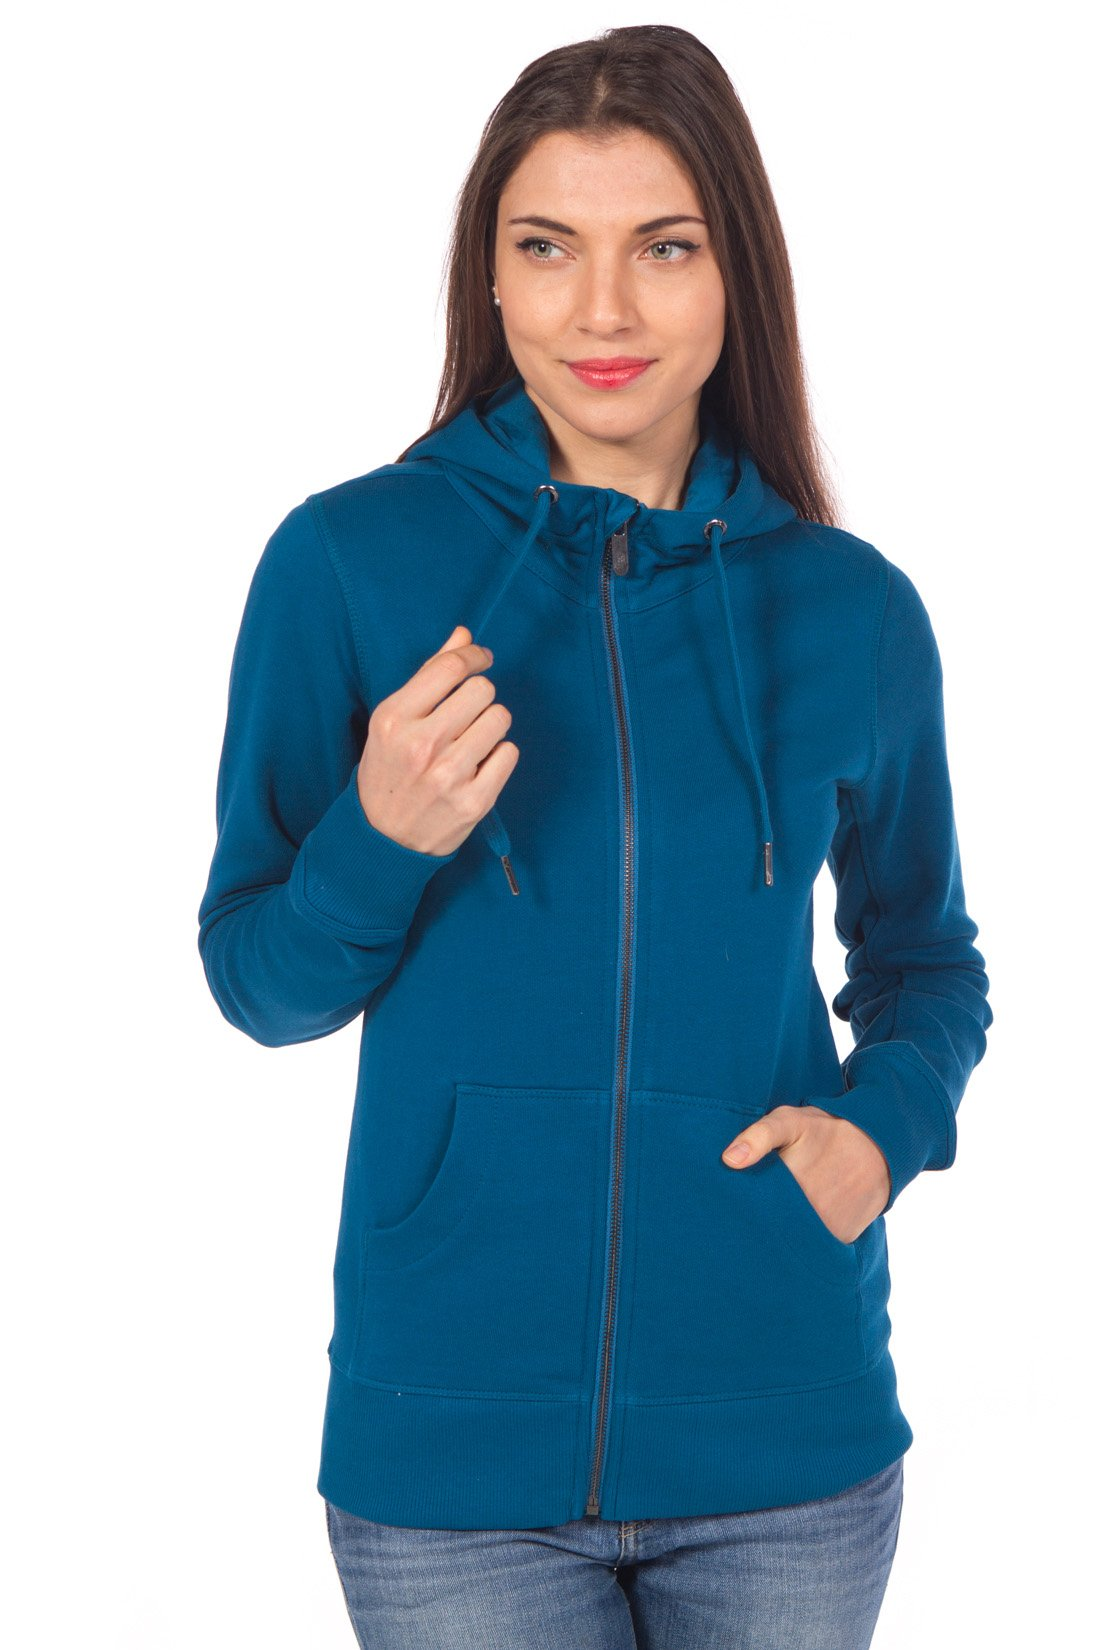 Ably Apparel Hannah (Large, Moroccan Blue)